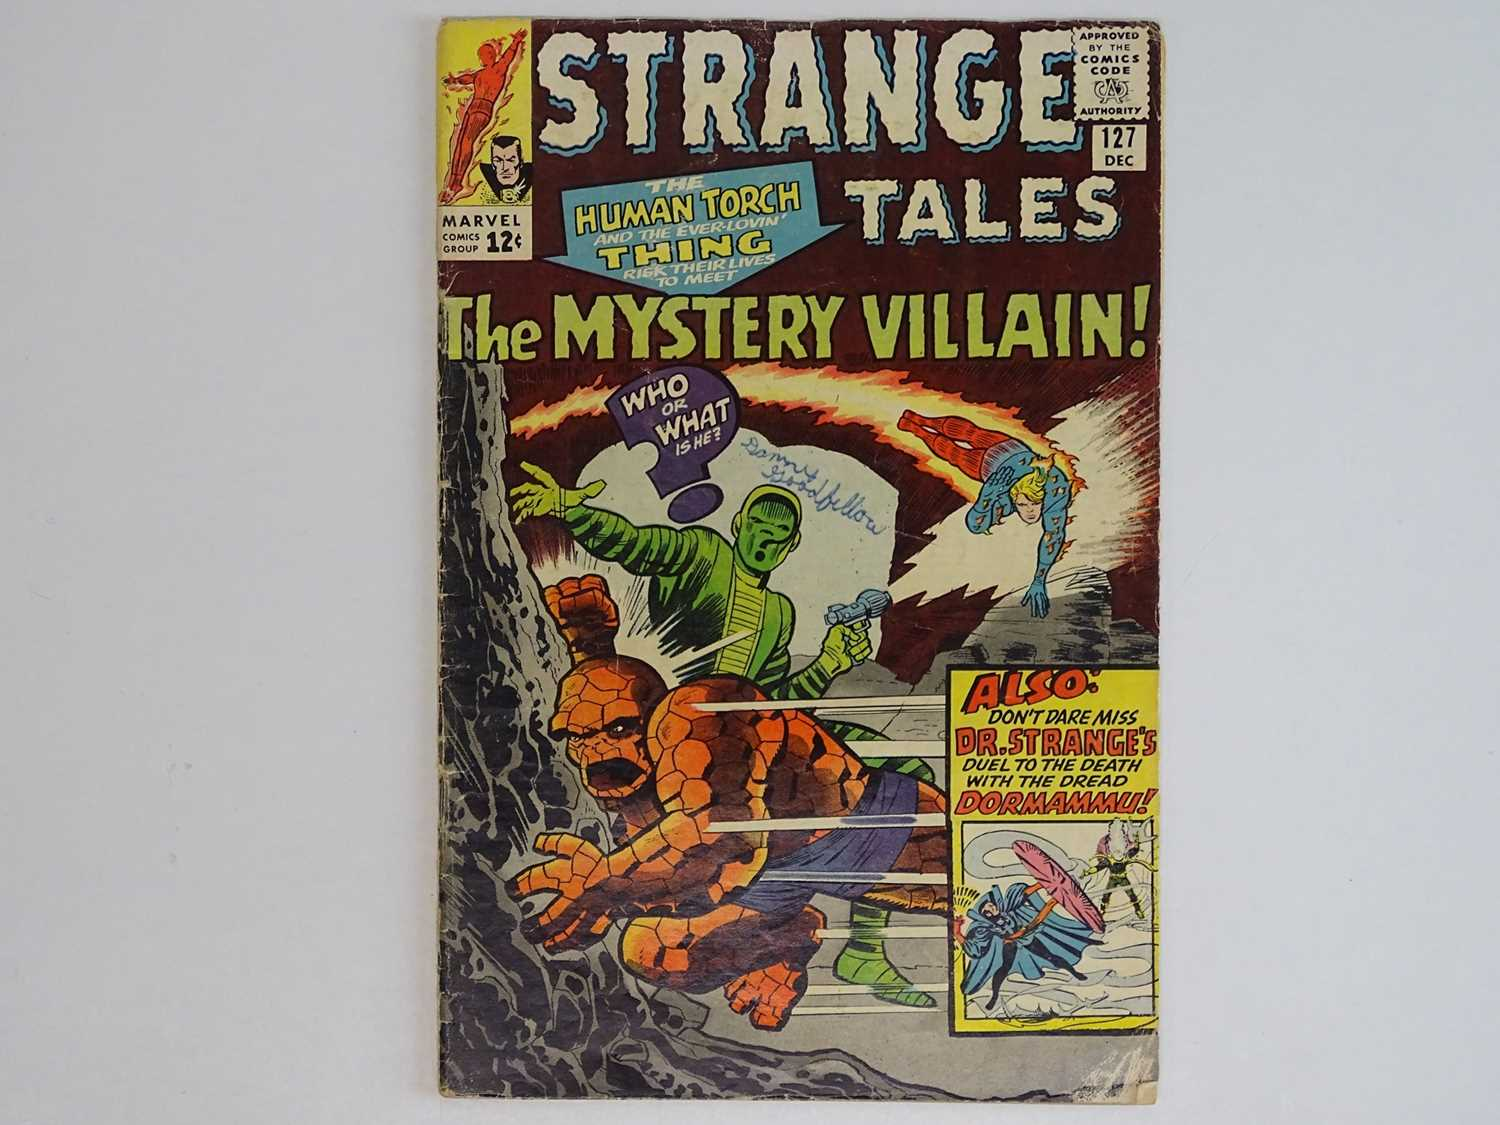 STRANGE TALES: HUMAN TORCH & DR. STRANGE #127 - (1964 - MARVEL) First appearance of the Eye of